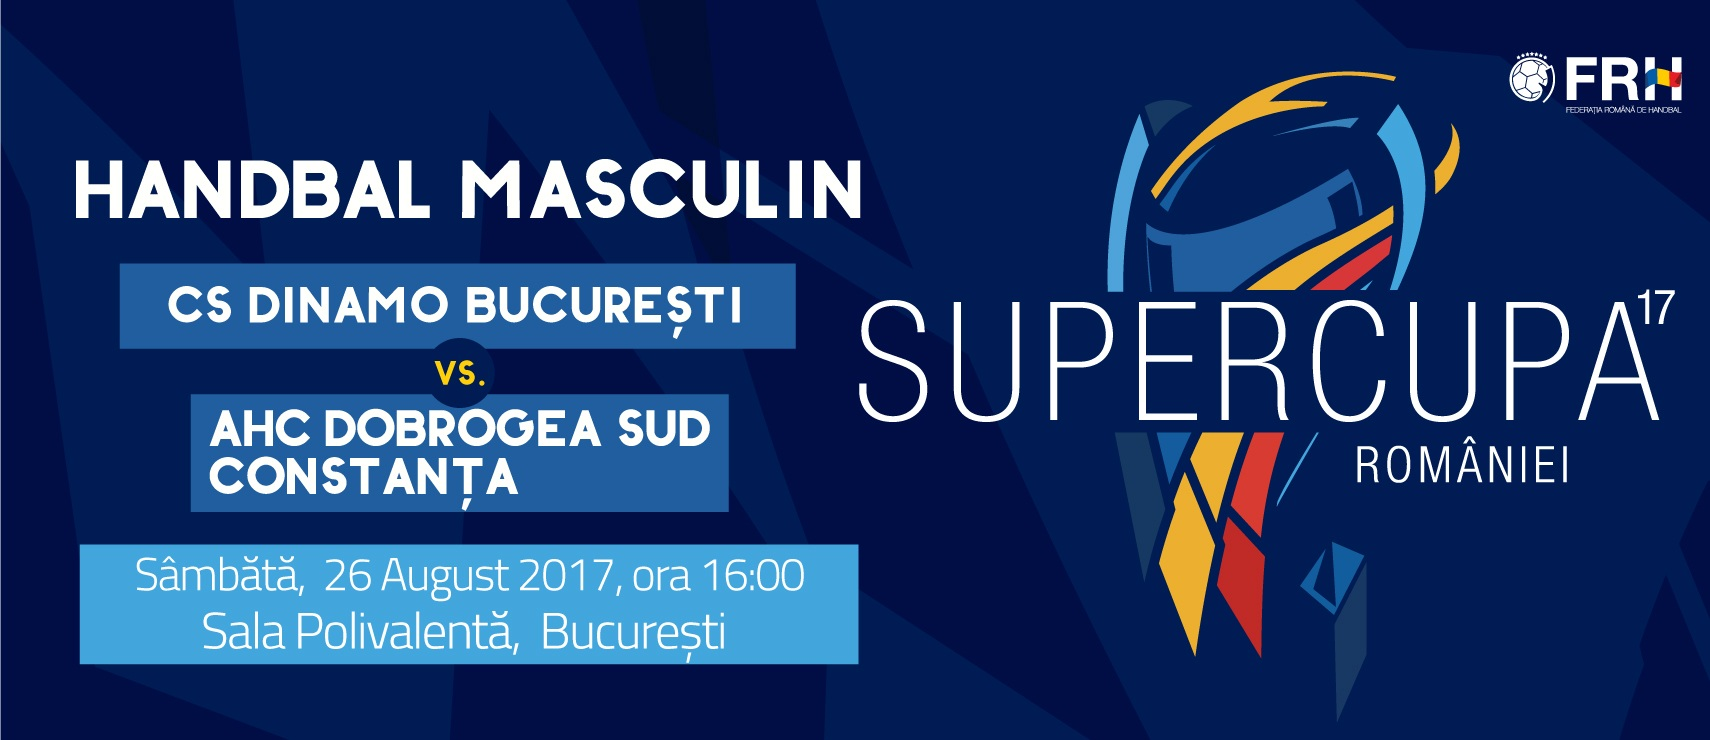 supercupa handbal masculin